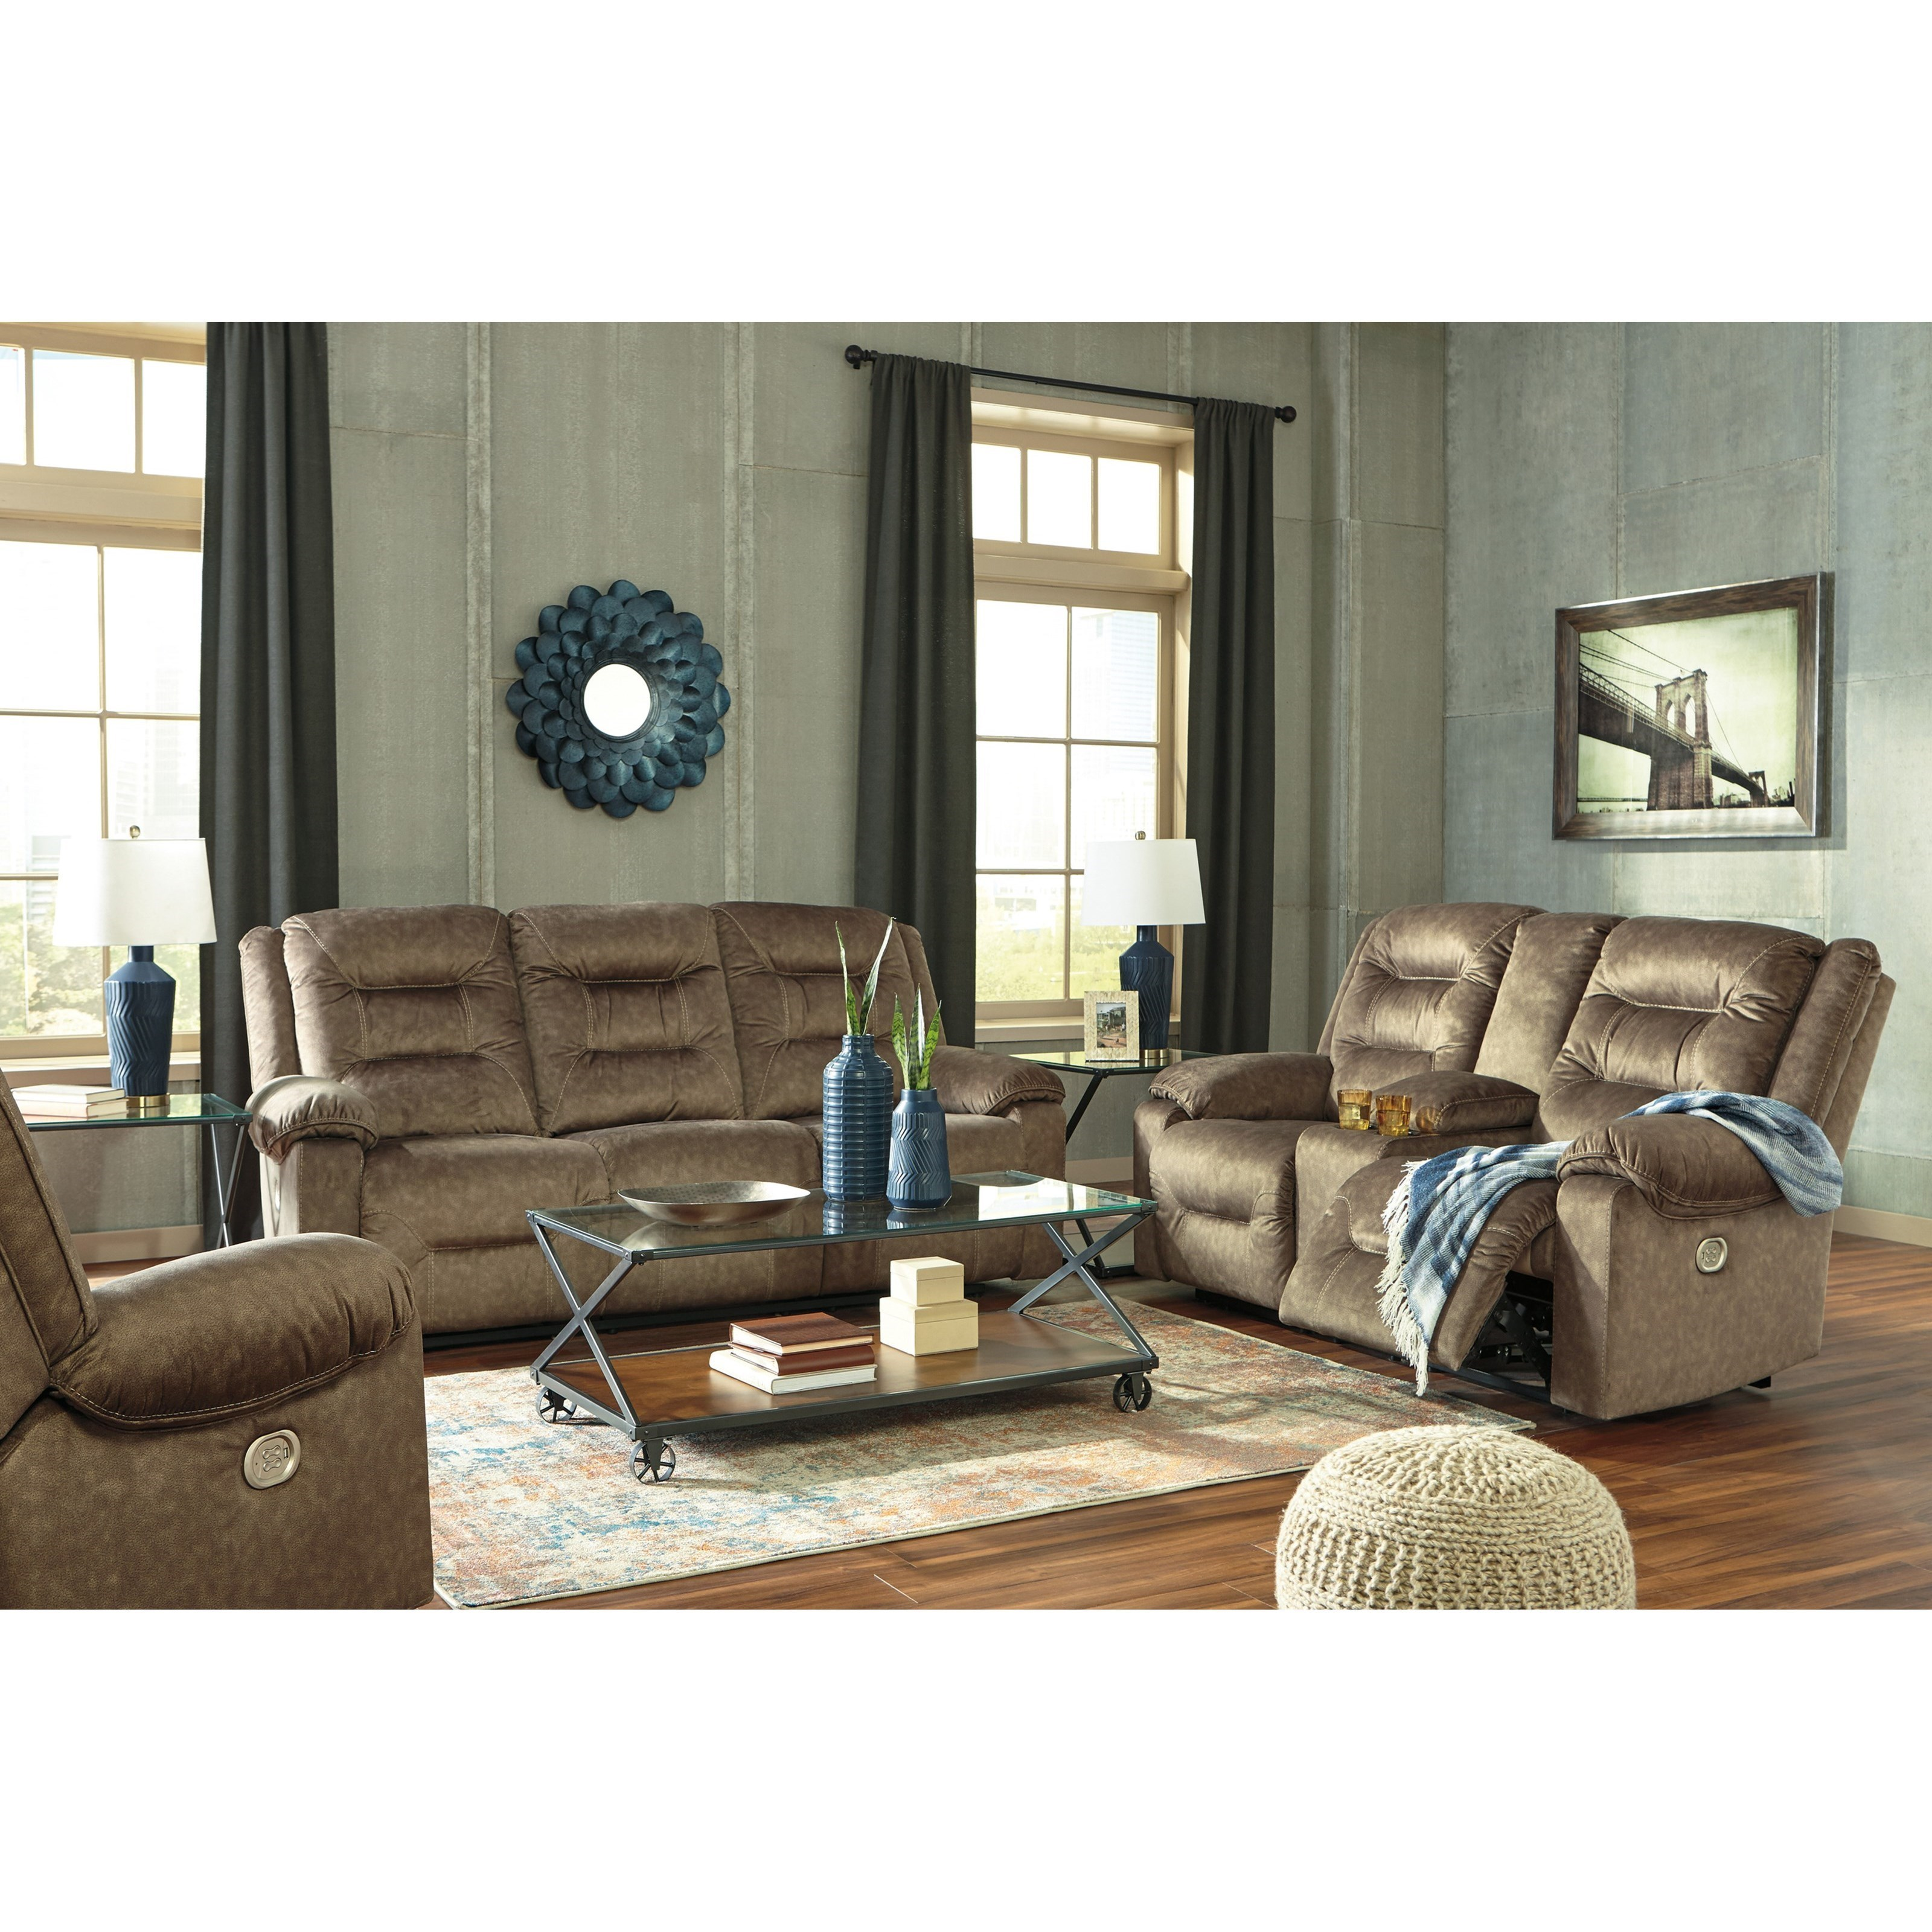 Signature Design By Ashley Waldheim Reclining Living Room Group   Royal  Furniture   Reclining Living Room Groups